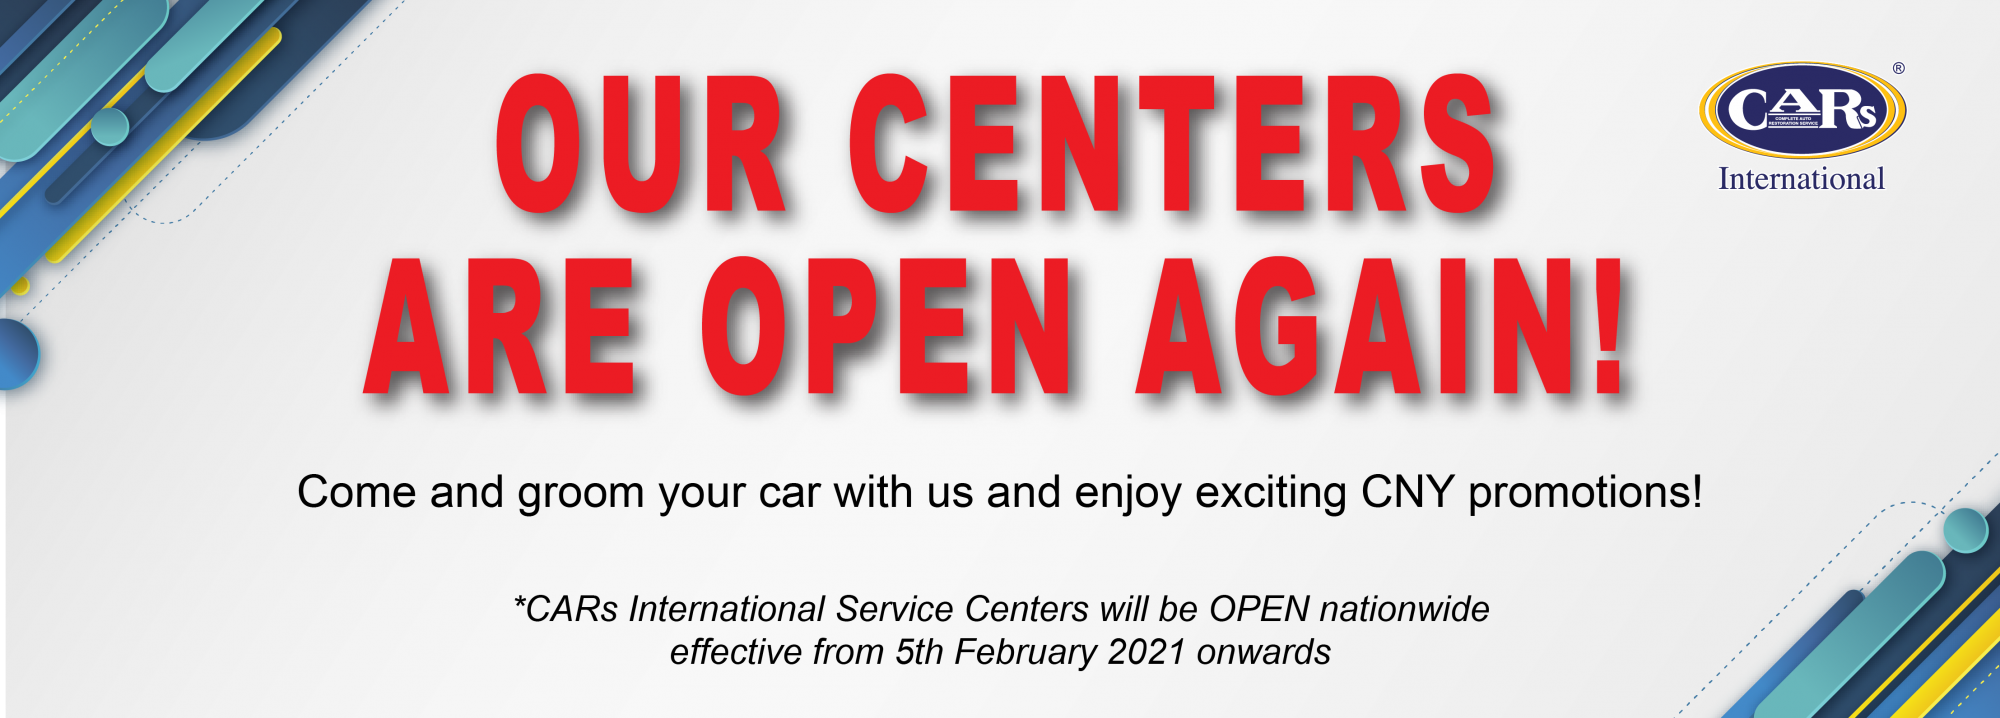 OUR CENTERS ARE OPEN AGAIN!